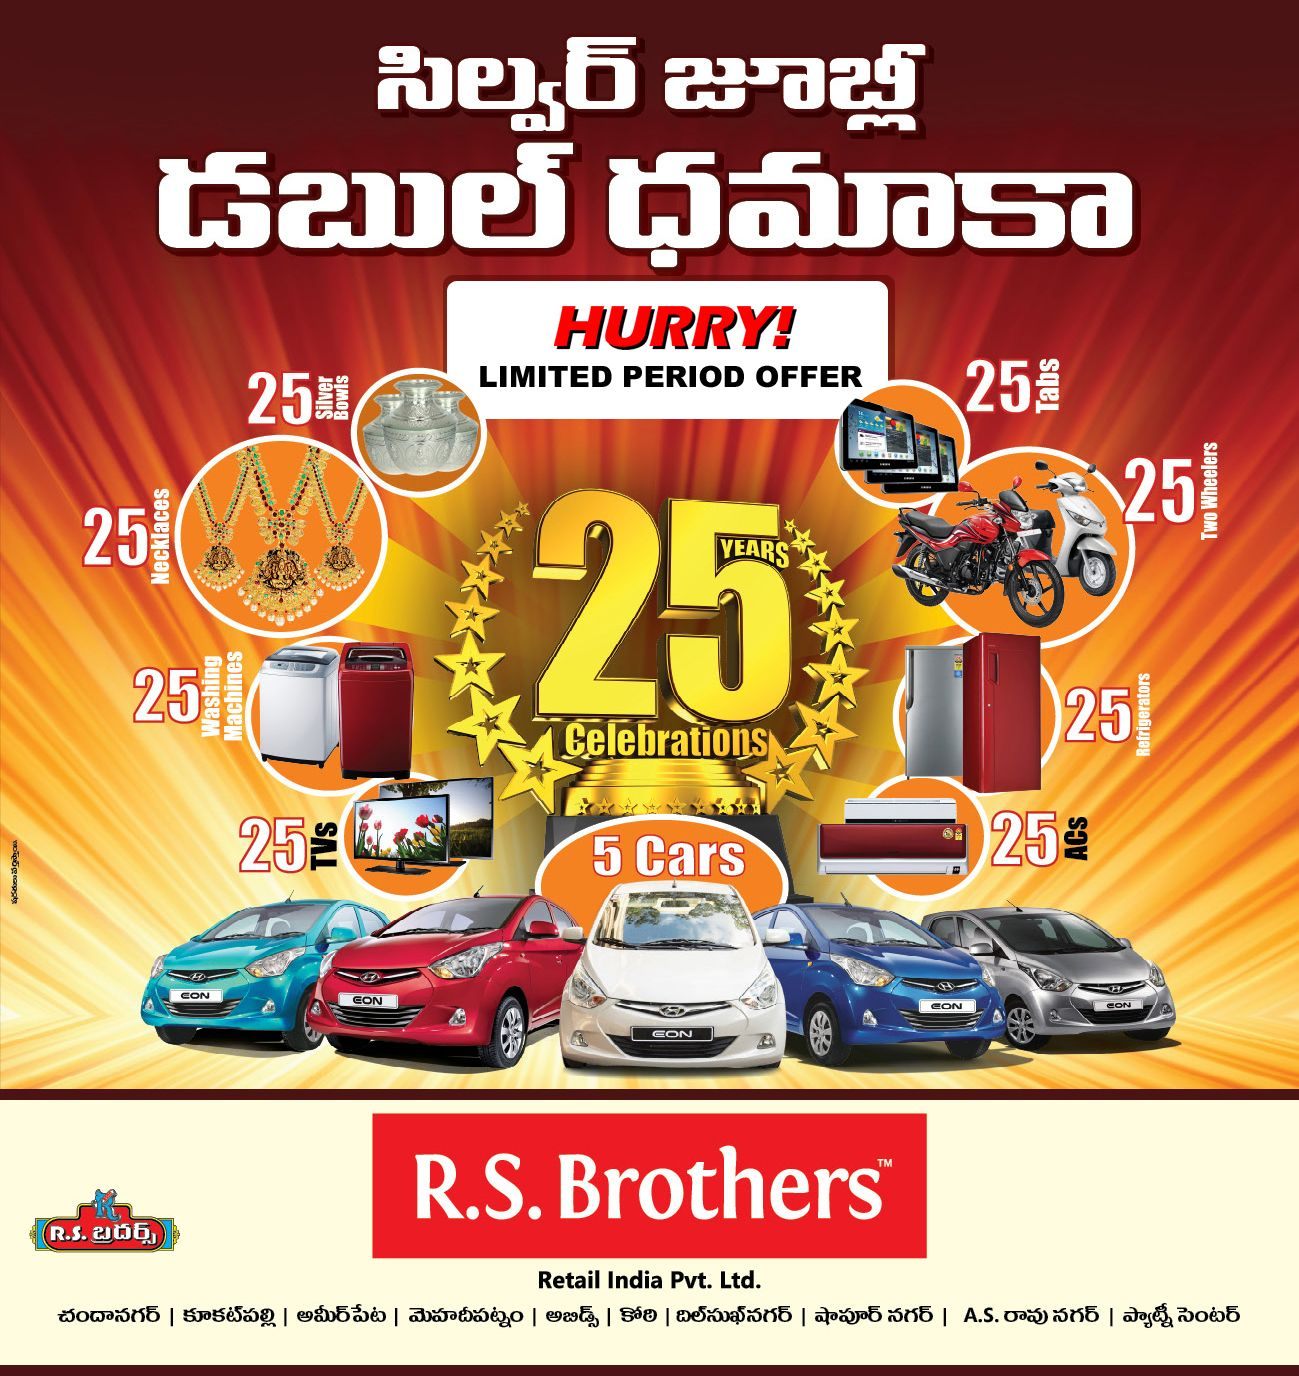 Silver Jubilee Celebrations only @R.S. Brothers! Are you willing to buy a Car, Plasma tv, Gold necklace etc.. then just shop in R.S. Brothers, you could win all these gifts with just a purchase of Rs.1000/- . Hurry up! #offers till October 26th only!